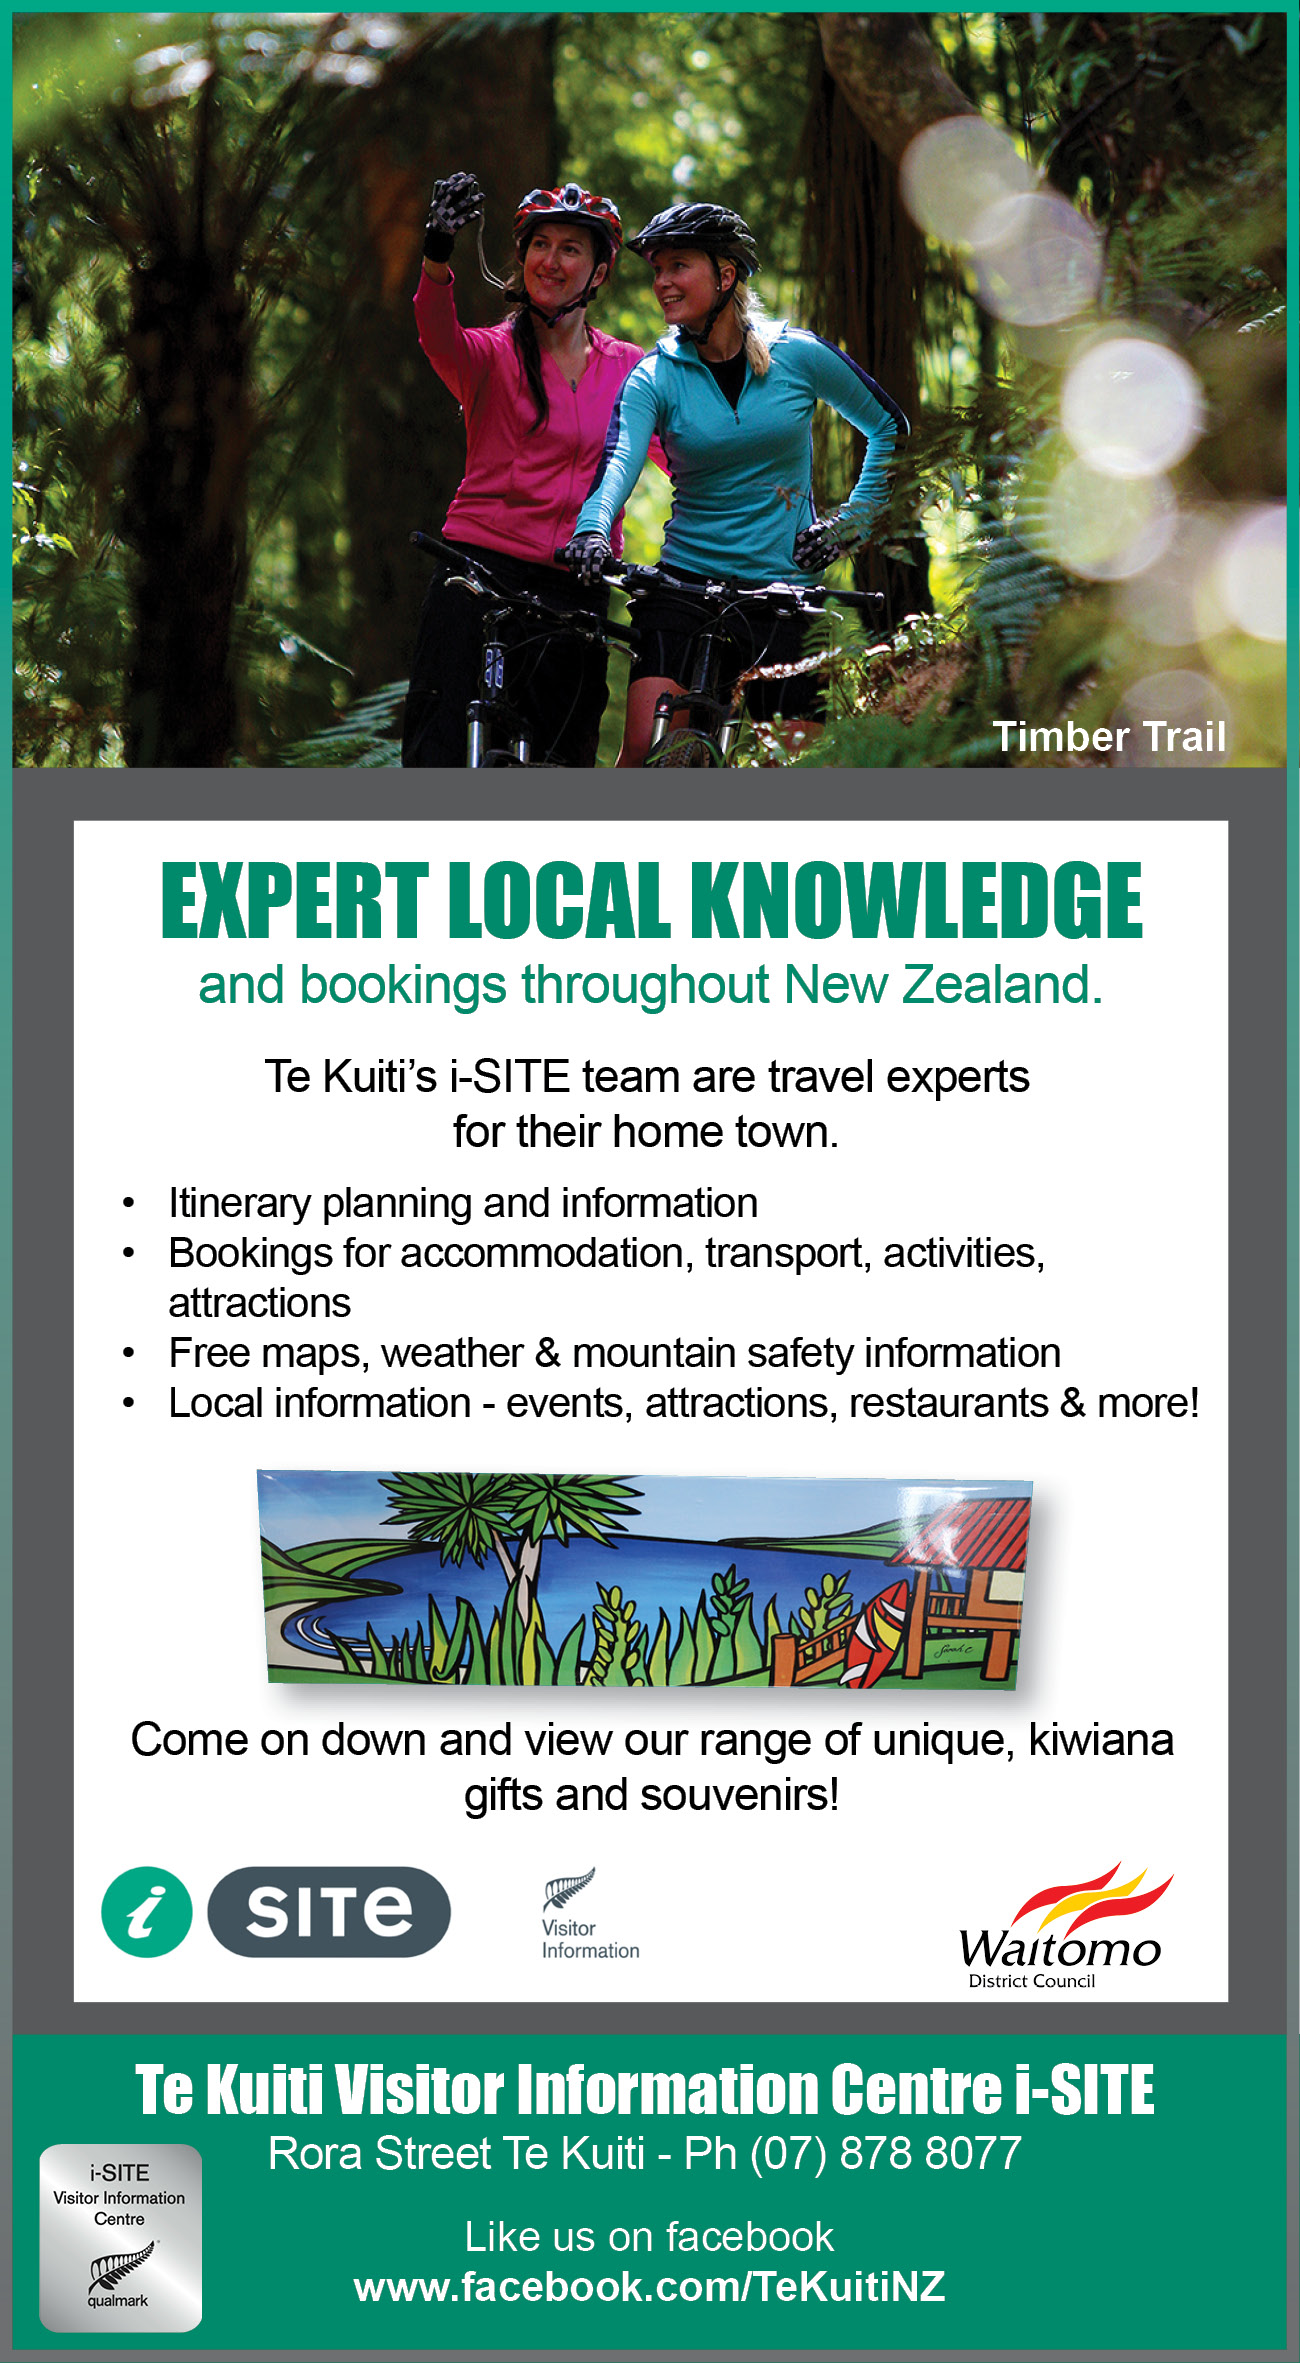 Te Kuiti's i-SITE team are travel experts  for their home town.